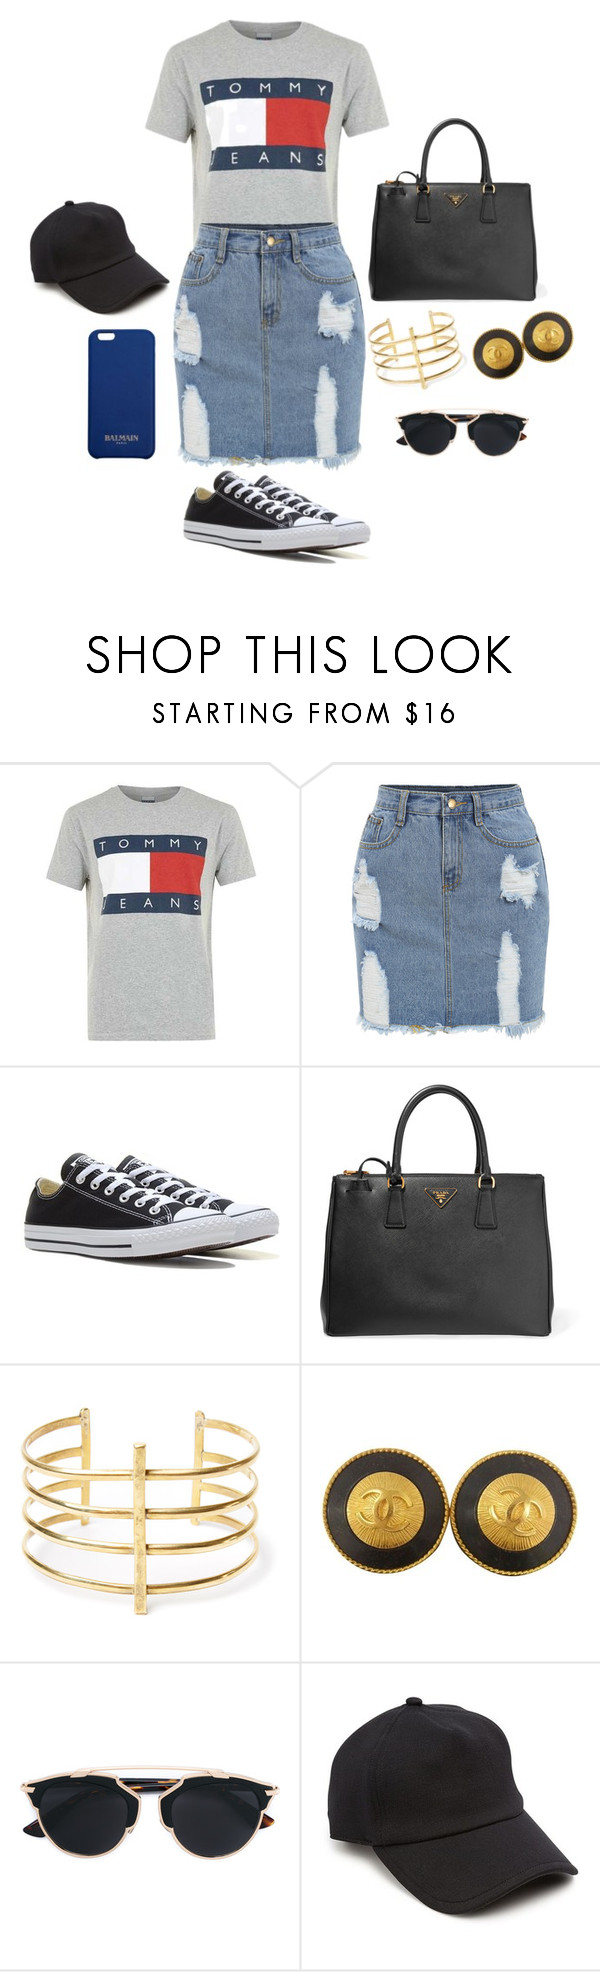 """casual day"" by georgiagleeson-14 ❤ liked on Polyvore featuring Tommy Hilfiger, Converse, Prada, BauXo, Chanel, Christian Dior, rag & bone and Balmain"